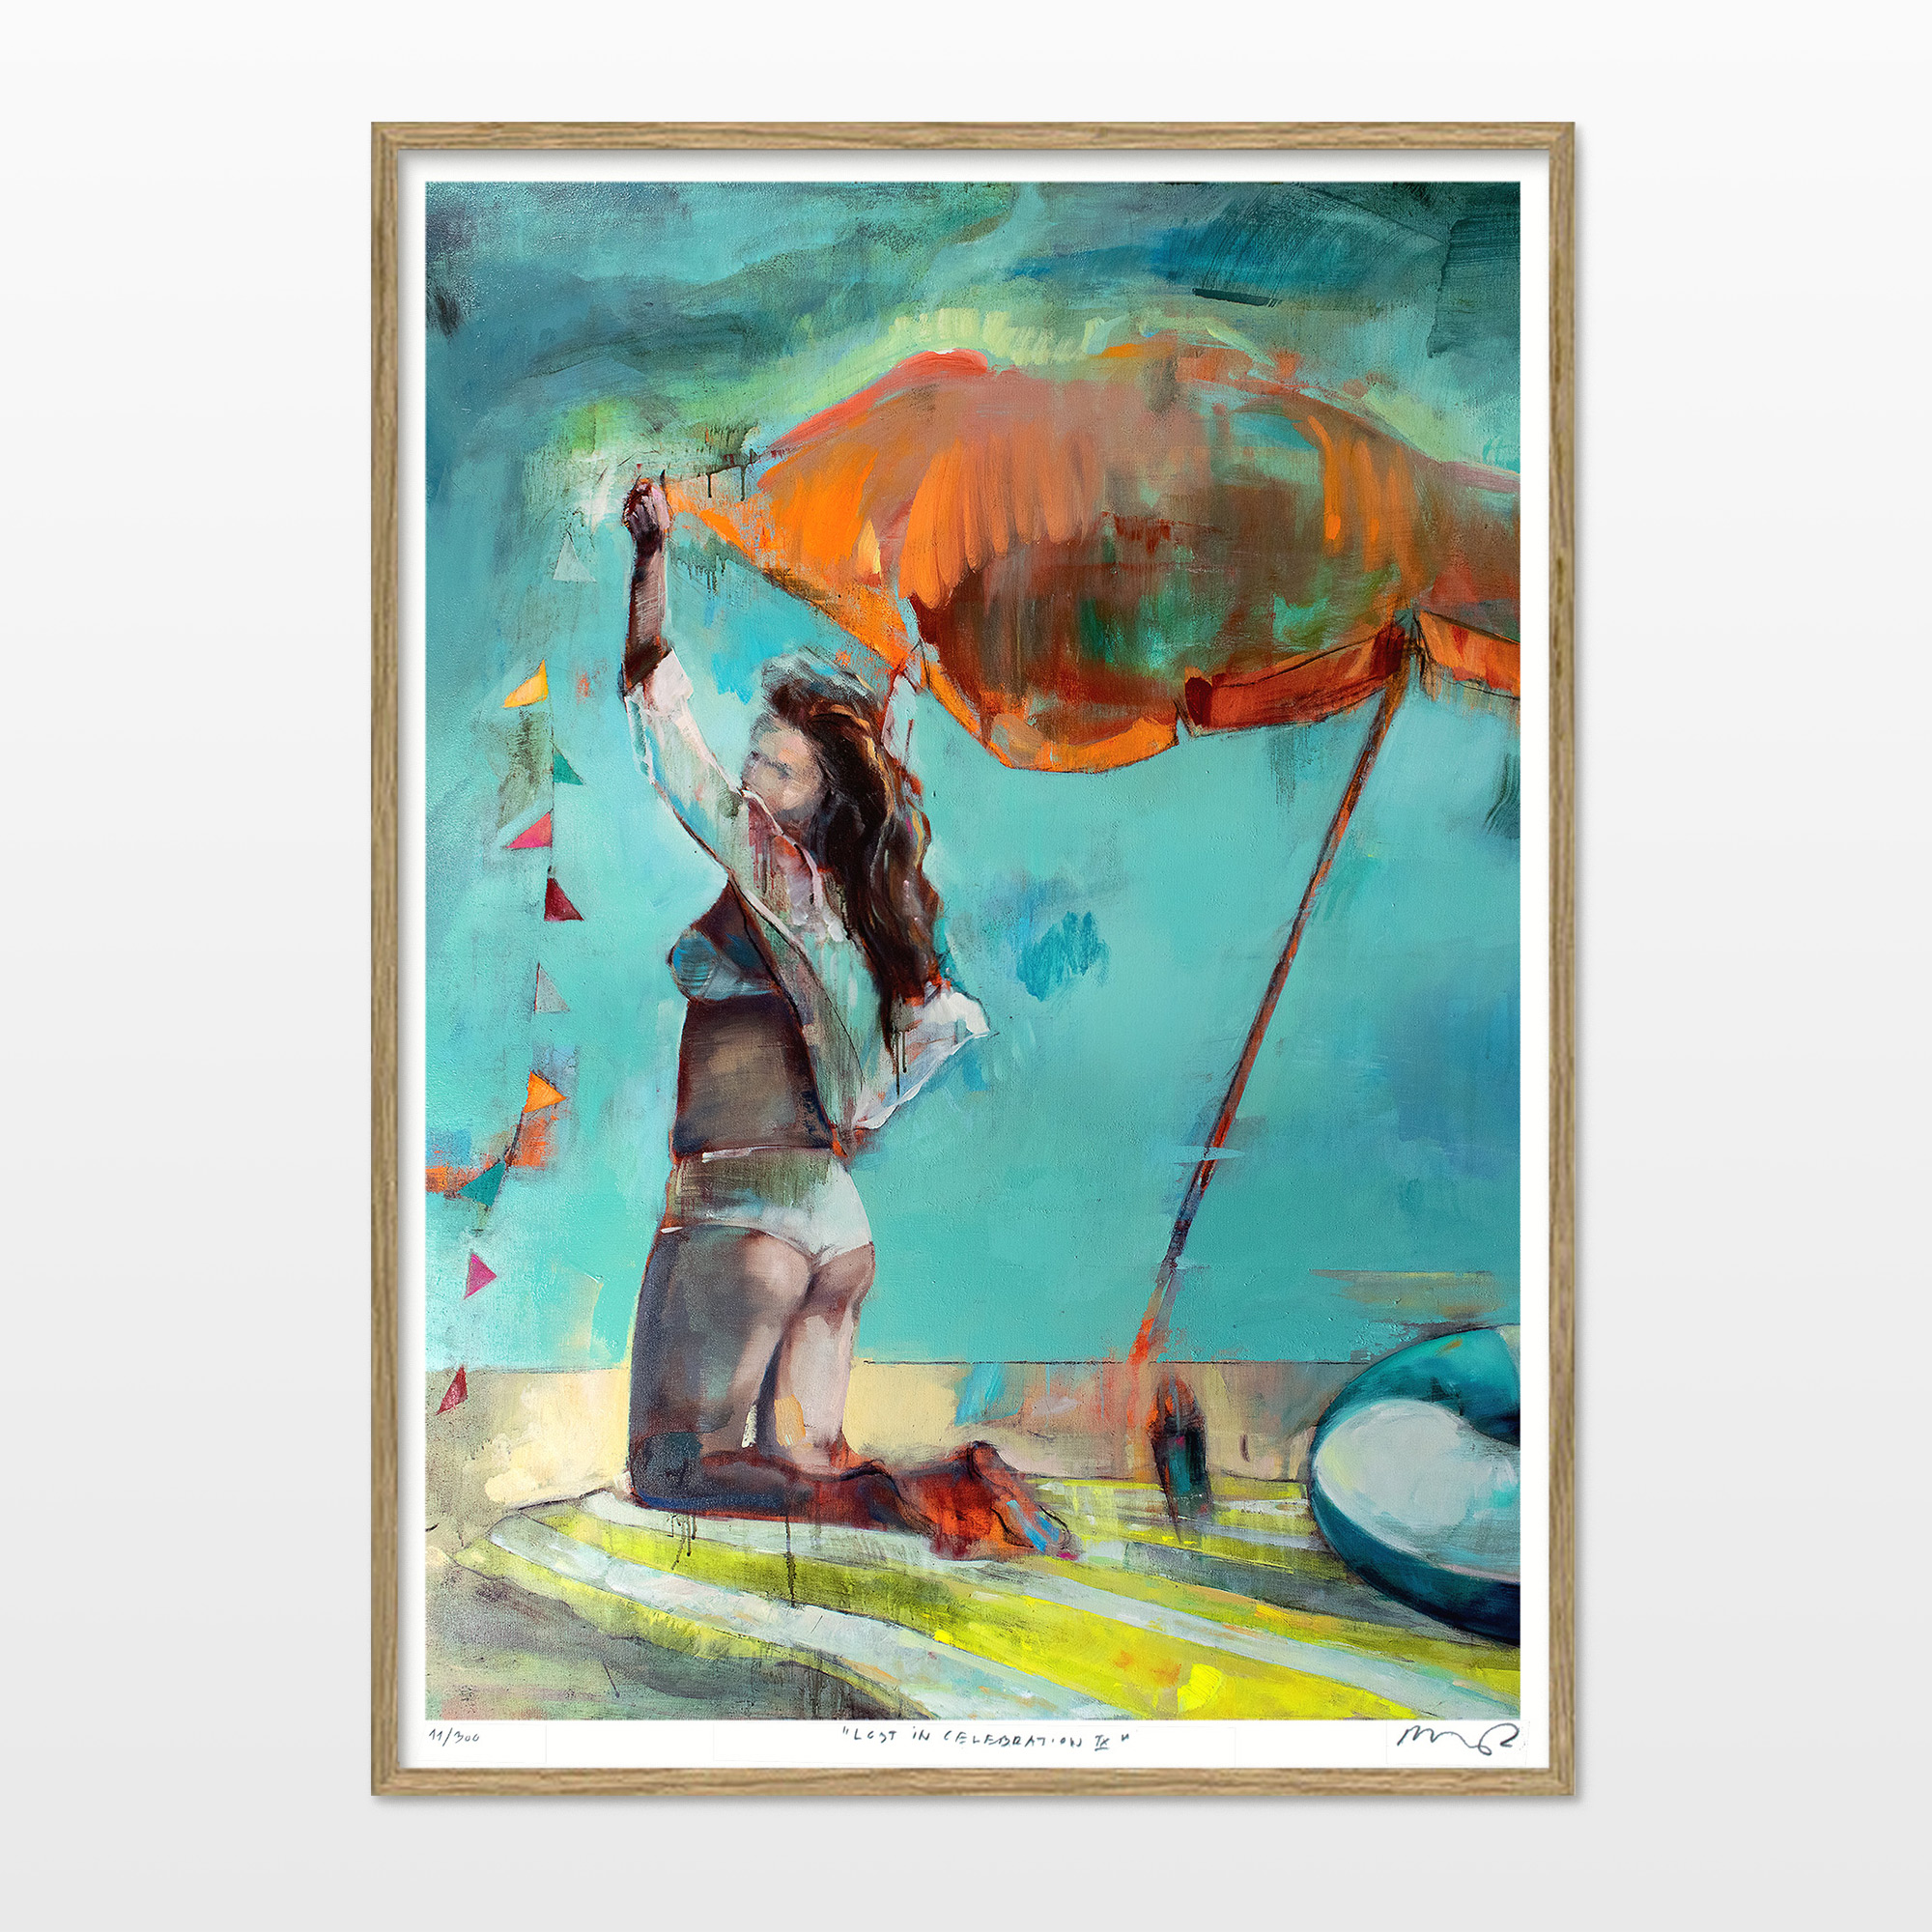 posters-prints, giclee-print, aesthetic, colorful, figurative, graphical, landscape, portraiture, bodies, nature, oceans, people, sky, gold, green, orange, turquoise, yellow, ink, beach, beautiful, danish, decorative, design, female, interior, interior-design, modern, modern-art, nordic, plants, posters, pretty, scandinavien, women, Buy original high quality art. Paintings, drawings, limited edition prints & posters by talented artists.